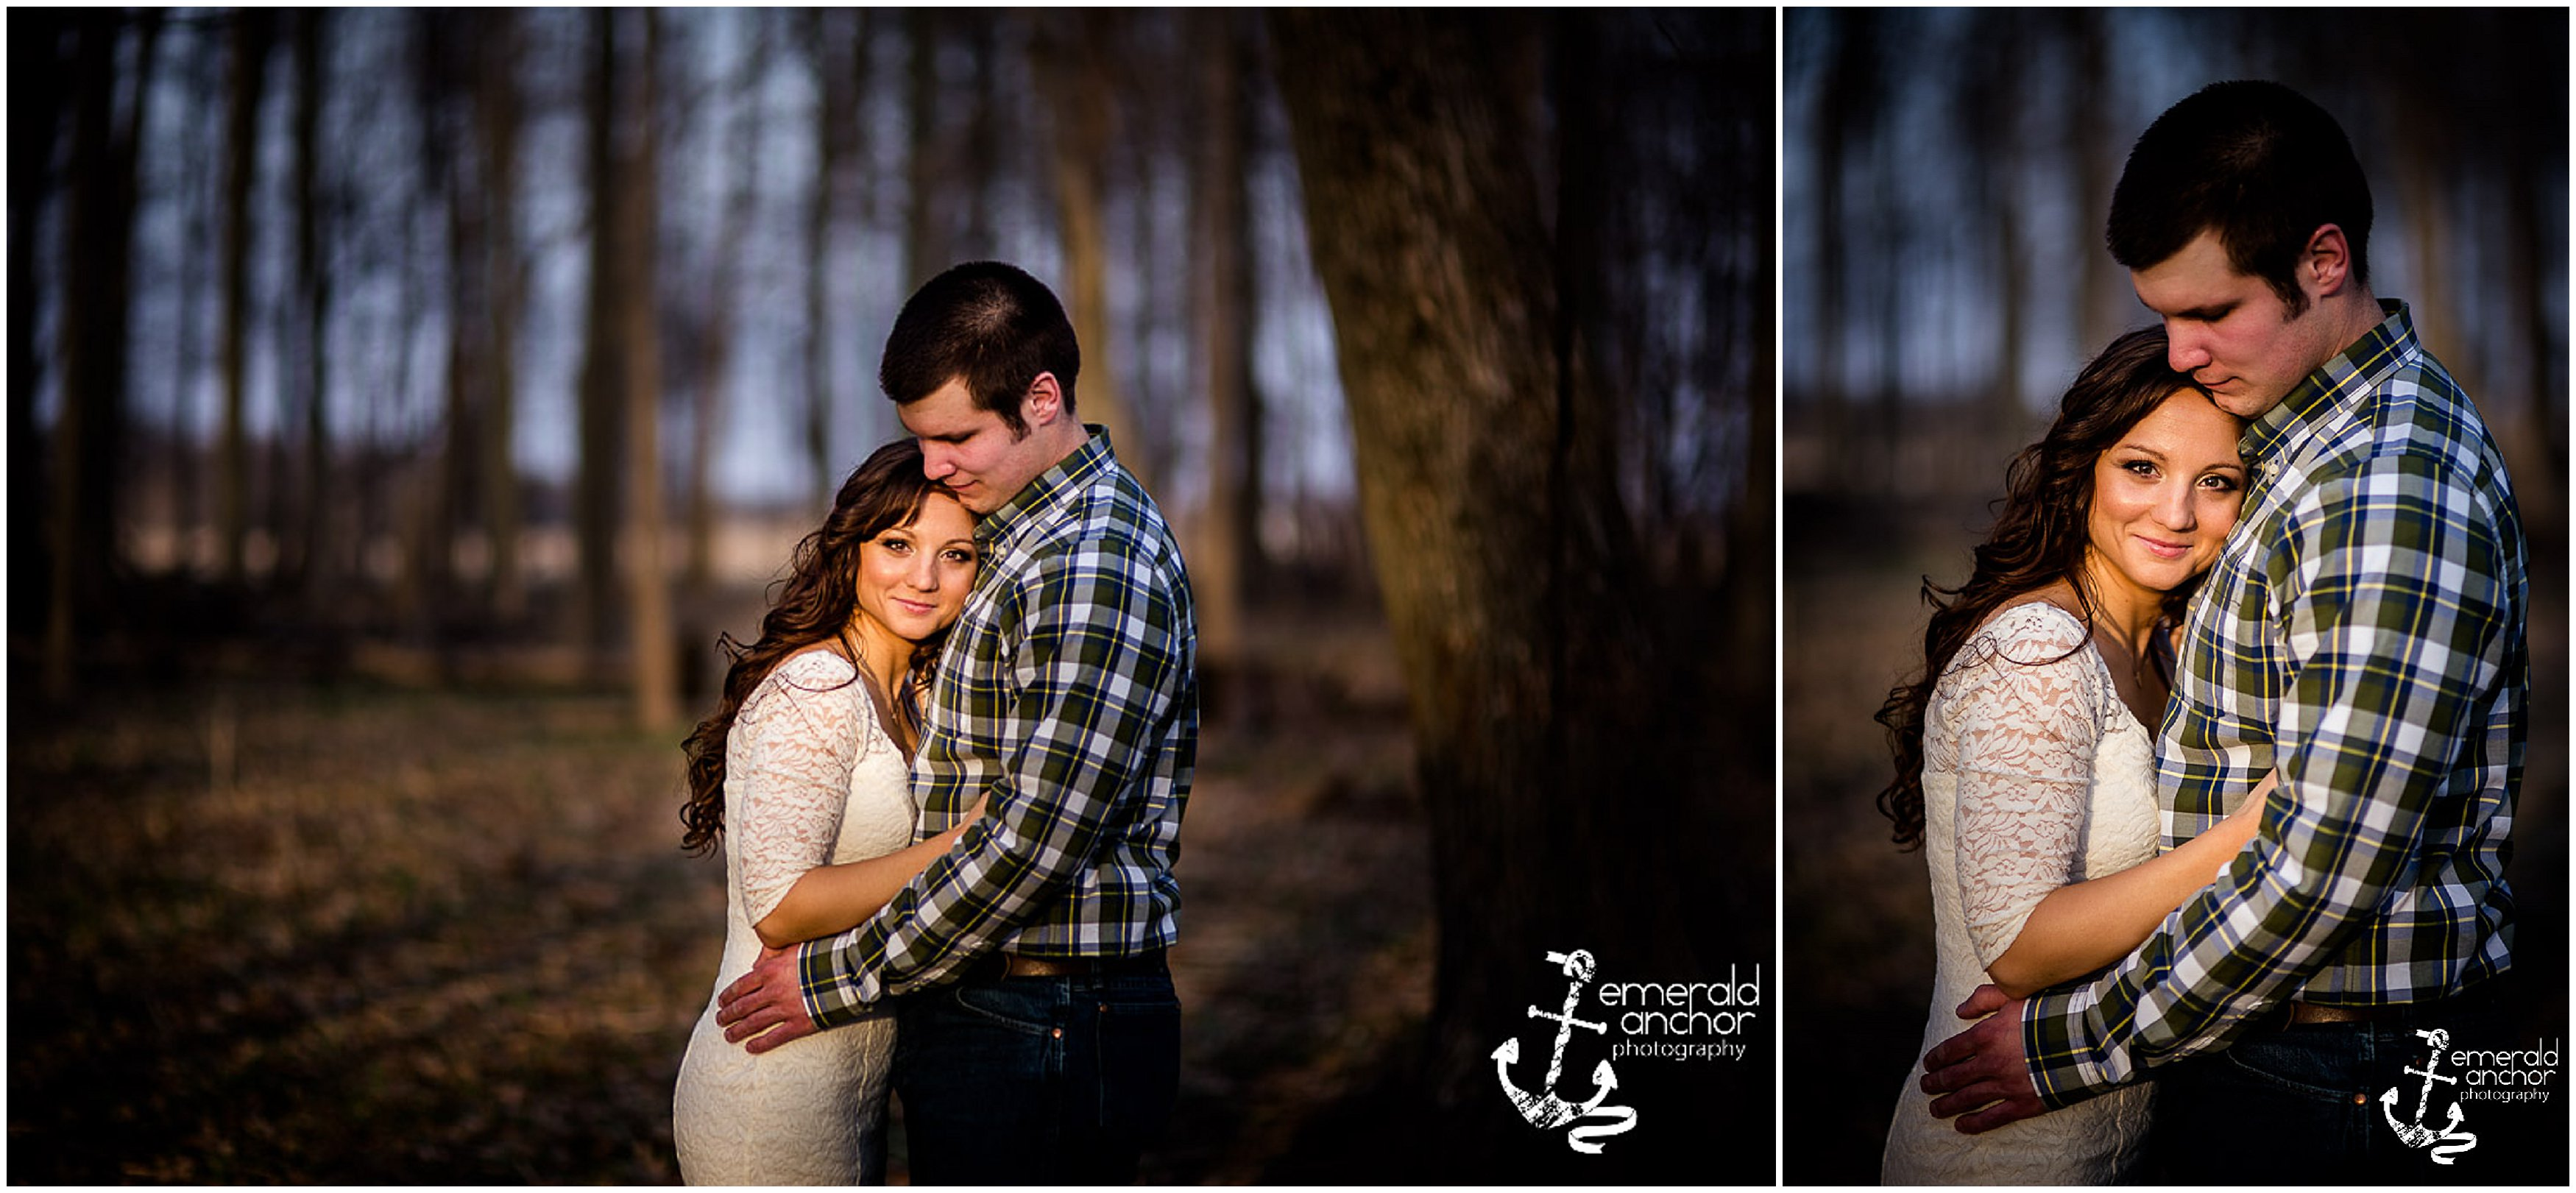 Emerald Anchor Photography Engagement Pictures (11)